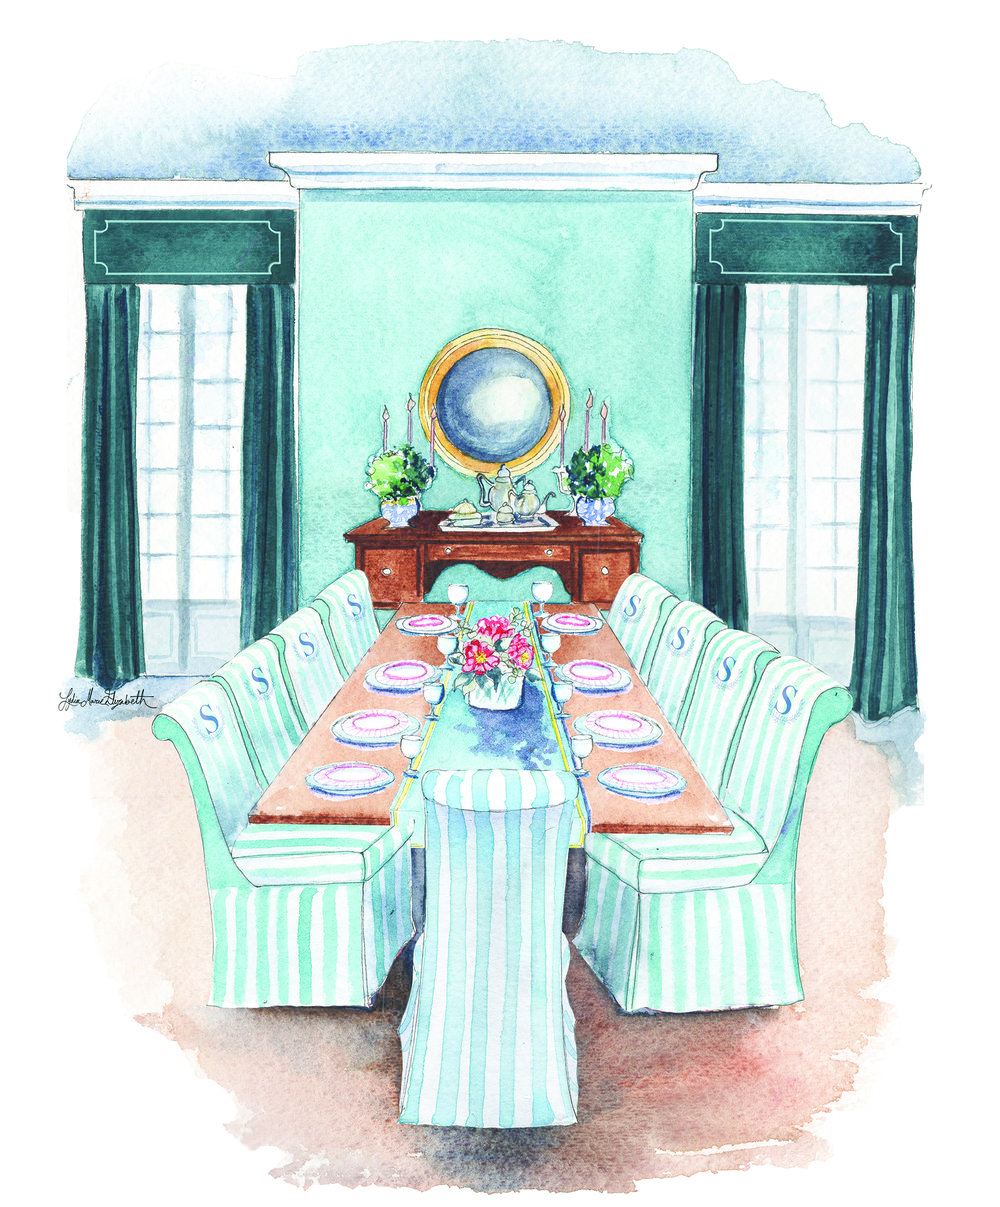 Lydia Marie Elizabeth Thanksgiving Dinner Interior Portrait for the November illustration 2017 Interior adn Architectural Calendar.jpg